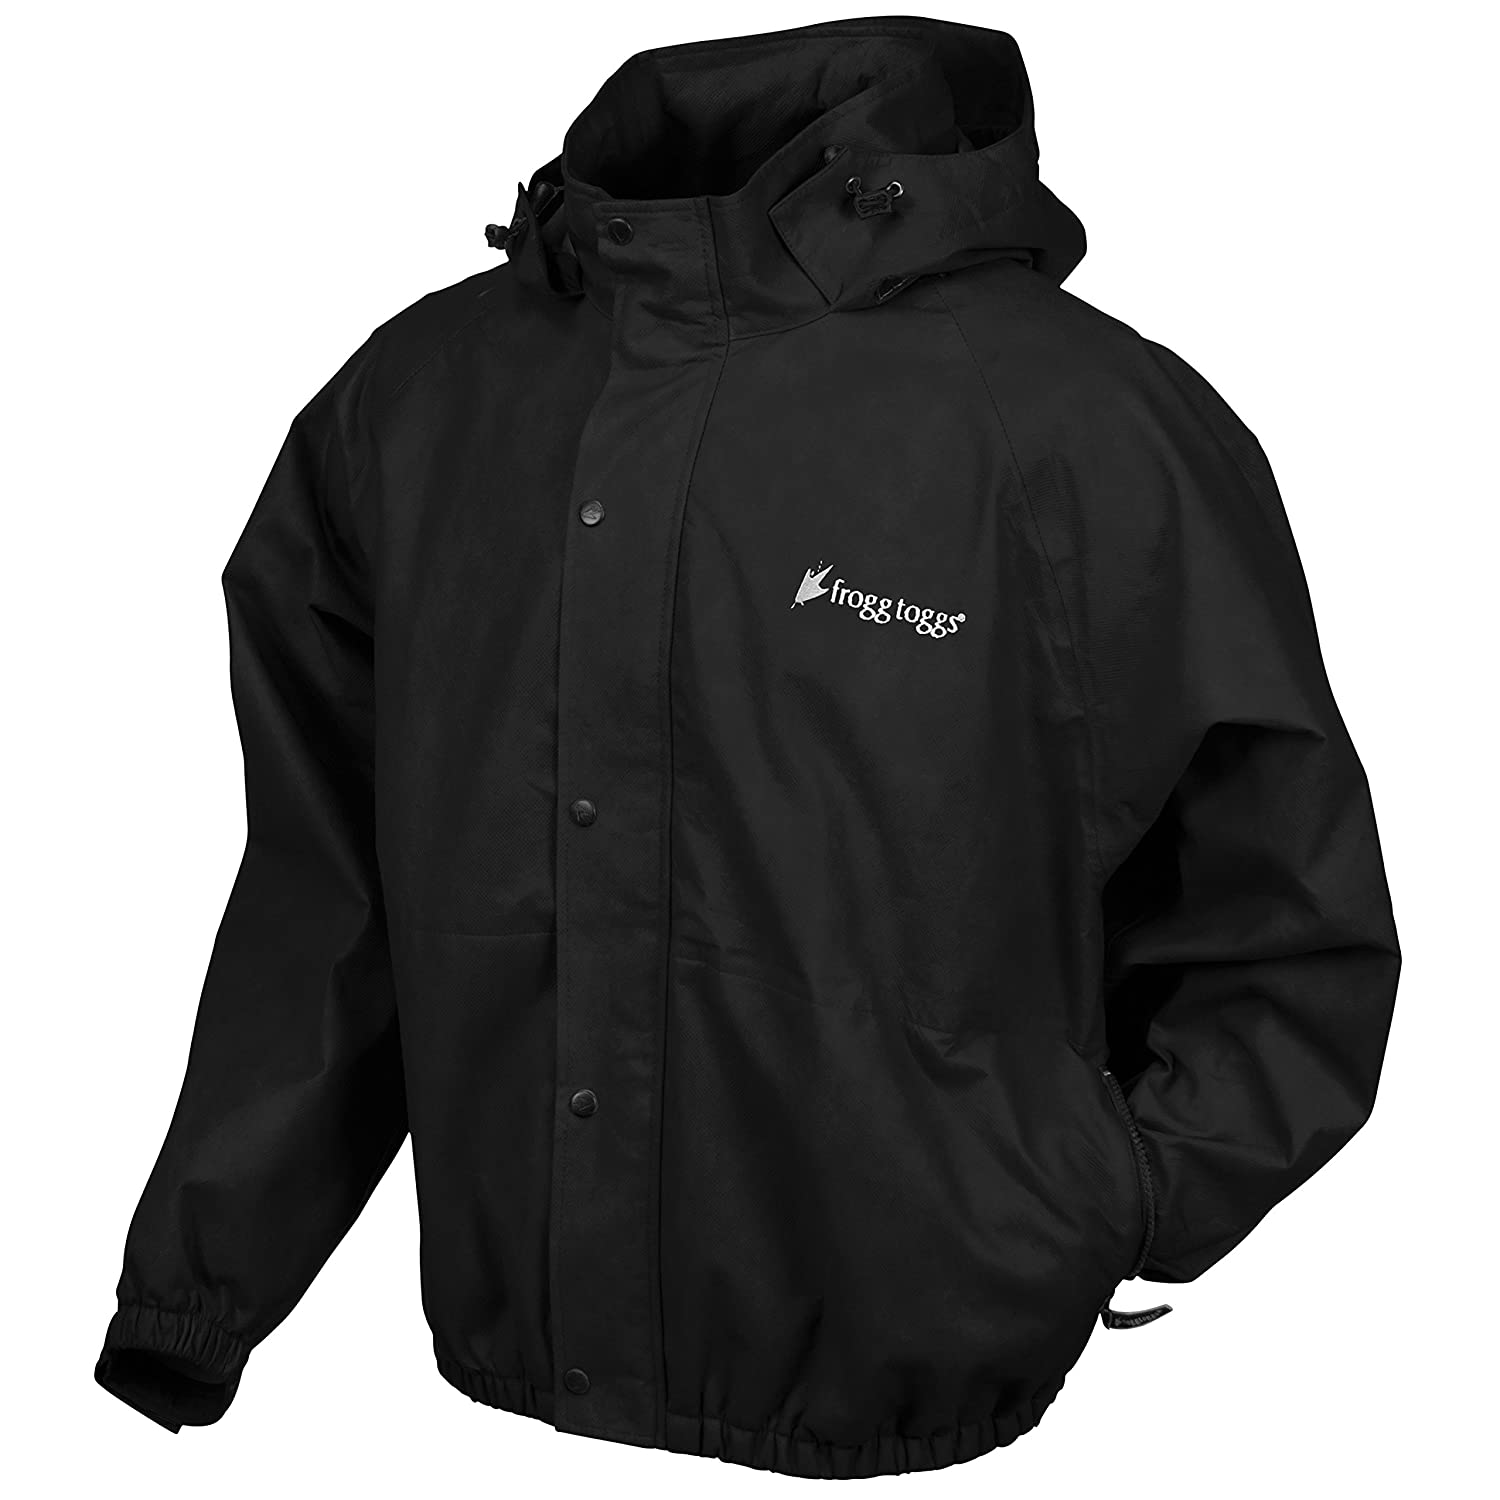 Frogg Toggs Men's Classic Pro Action Jacket with Pockets, Black, Small